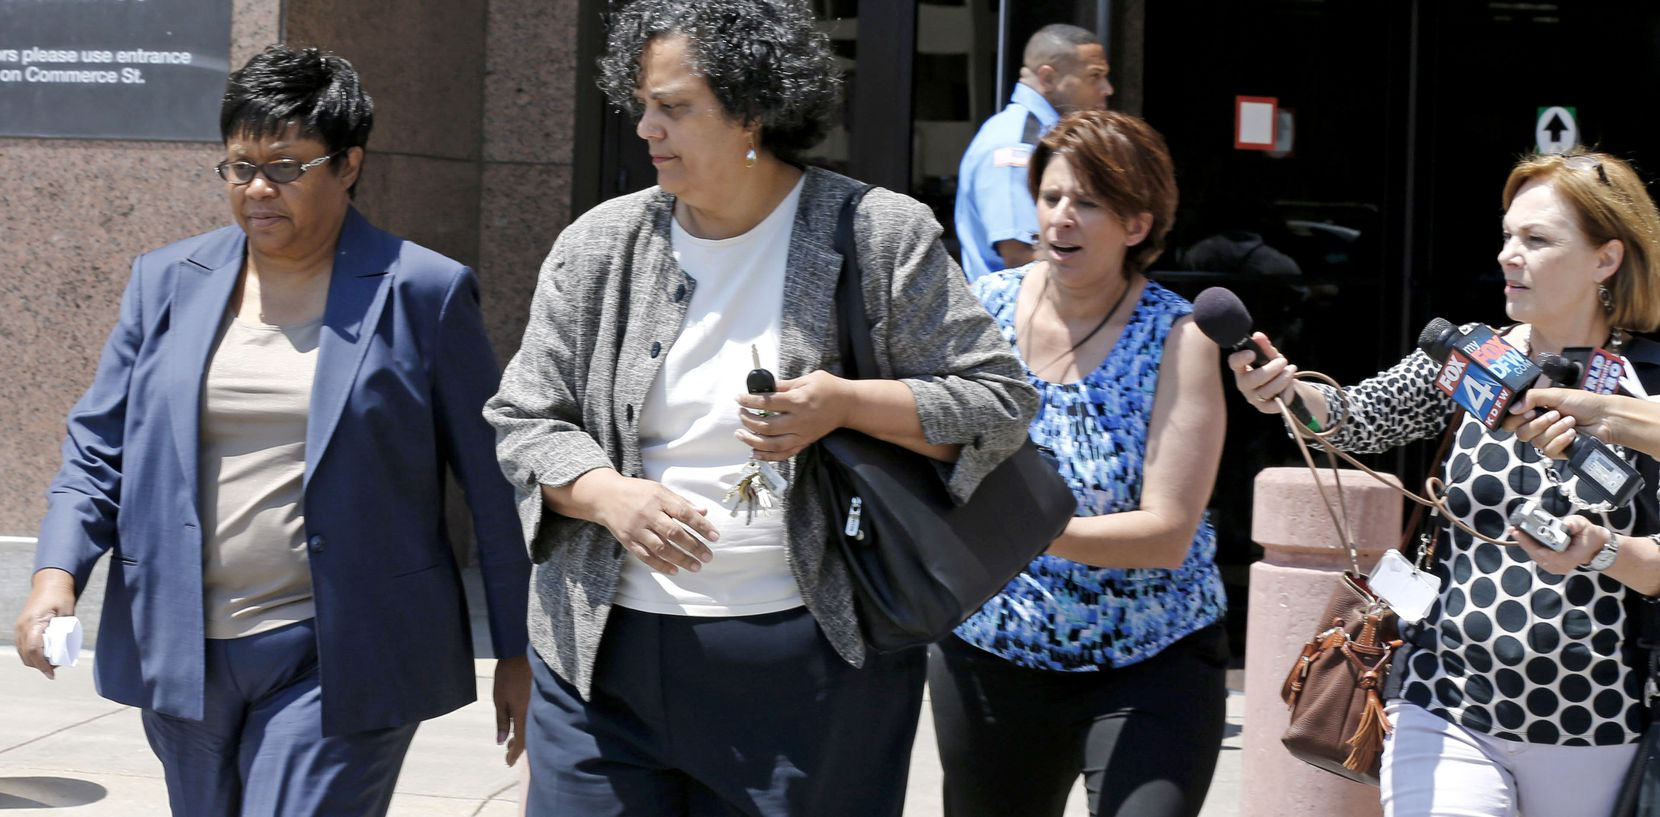 """Kathy Nealy (left) and her attorney Cheryl Wattley leave the Earle Cabell Federal Building in July 2014. Nealy was indicted and accused of secretly funneling almost $200,000 to Dallas County Commissioner John Wiley Price as a """"straw purchaser of four pieces of real estate, and handing over more than $100,000 in rent payments from a property."""